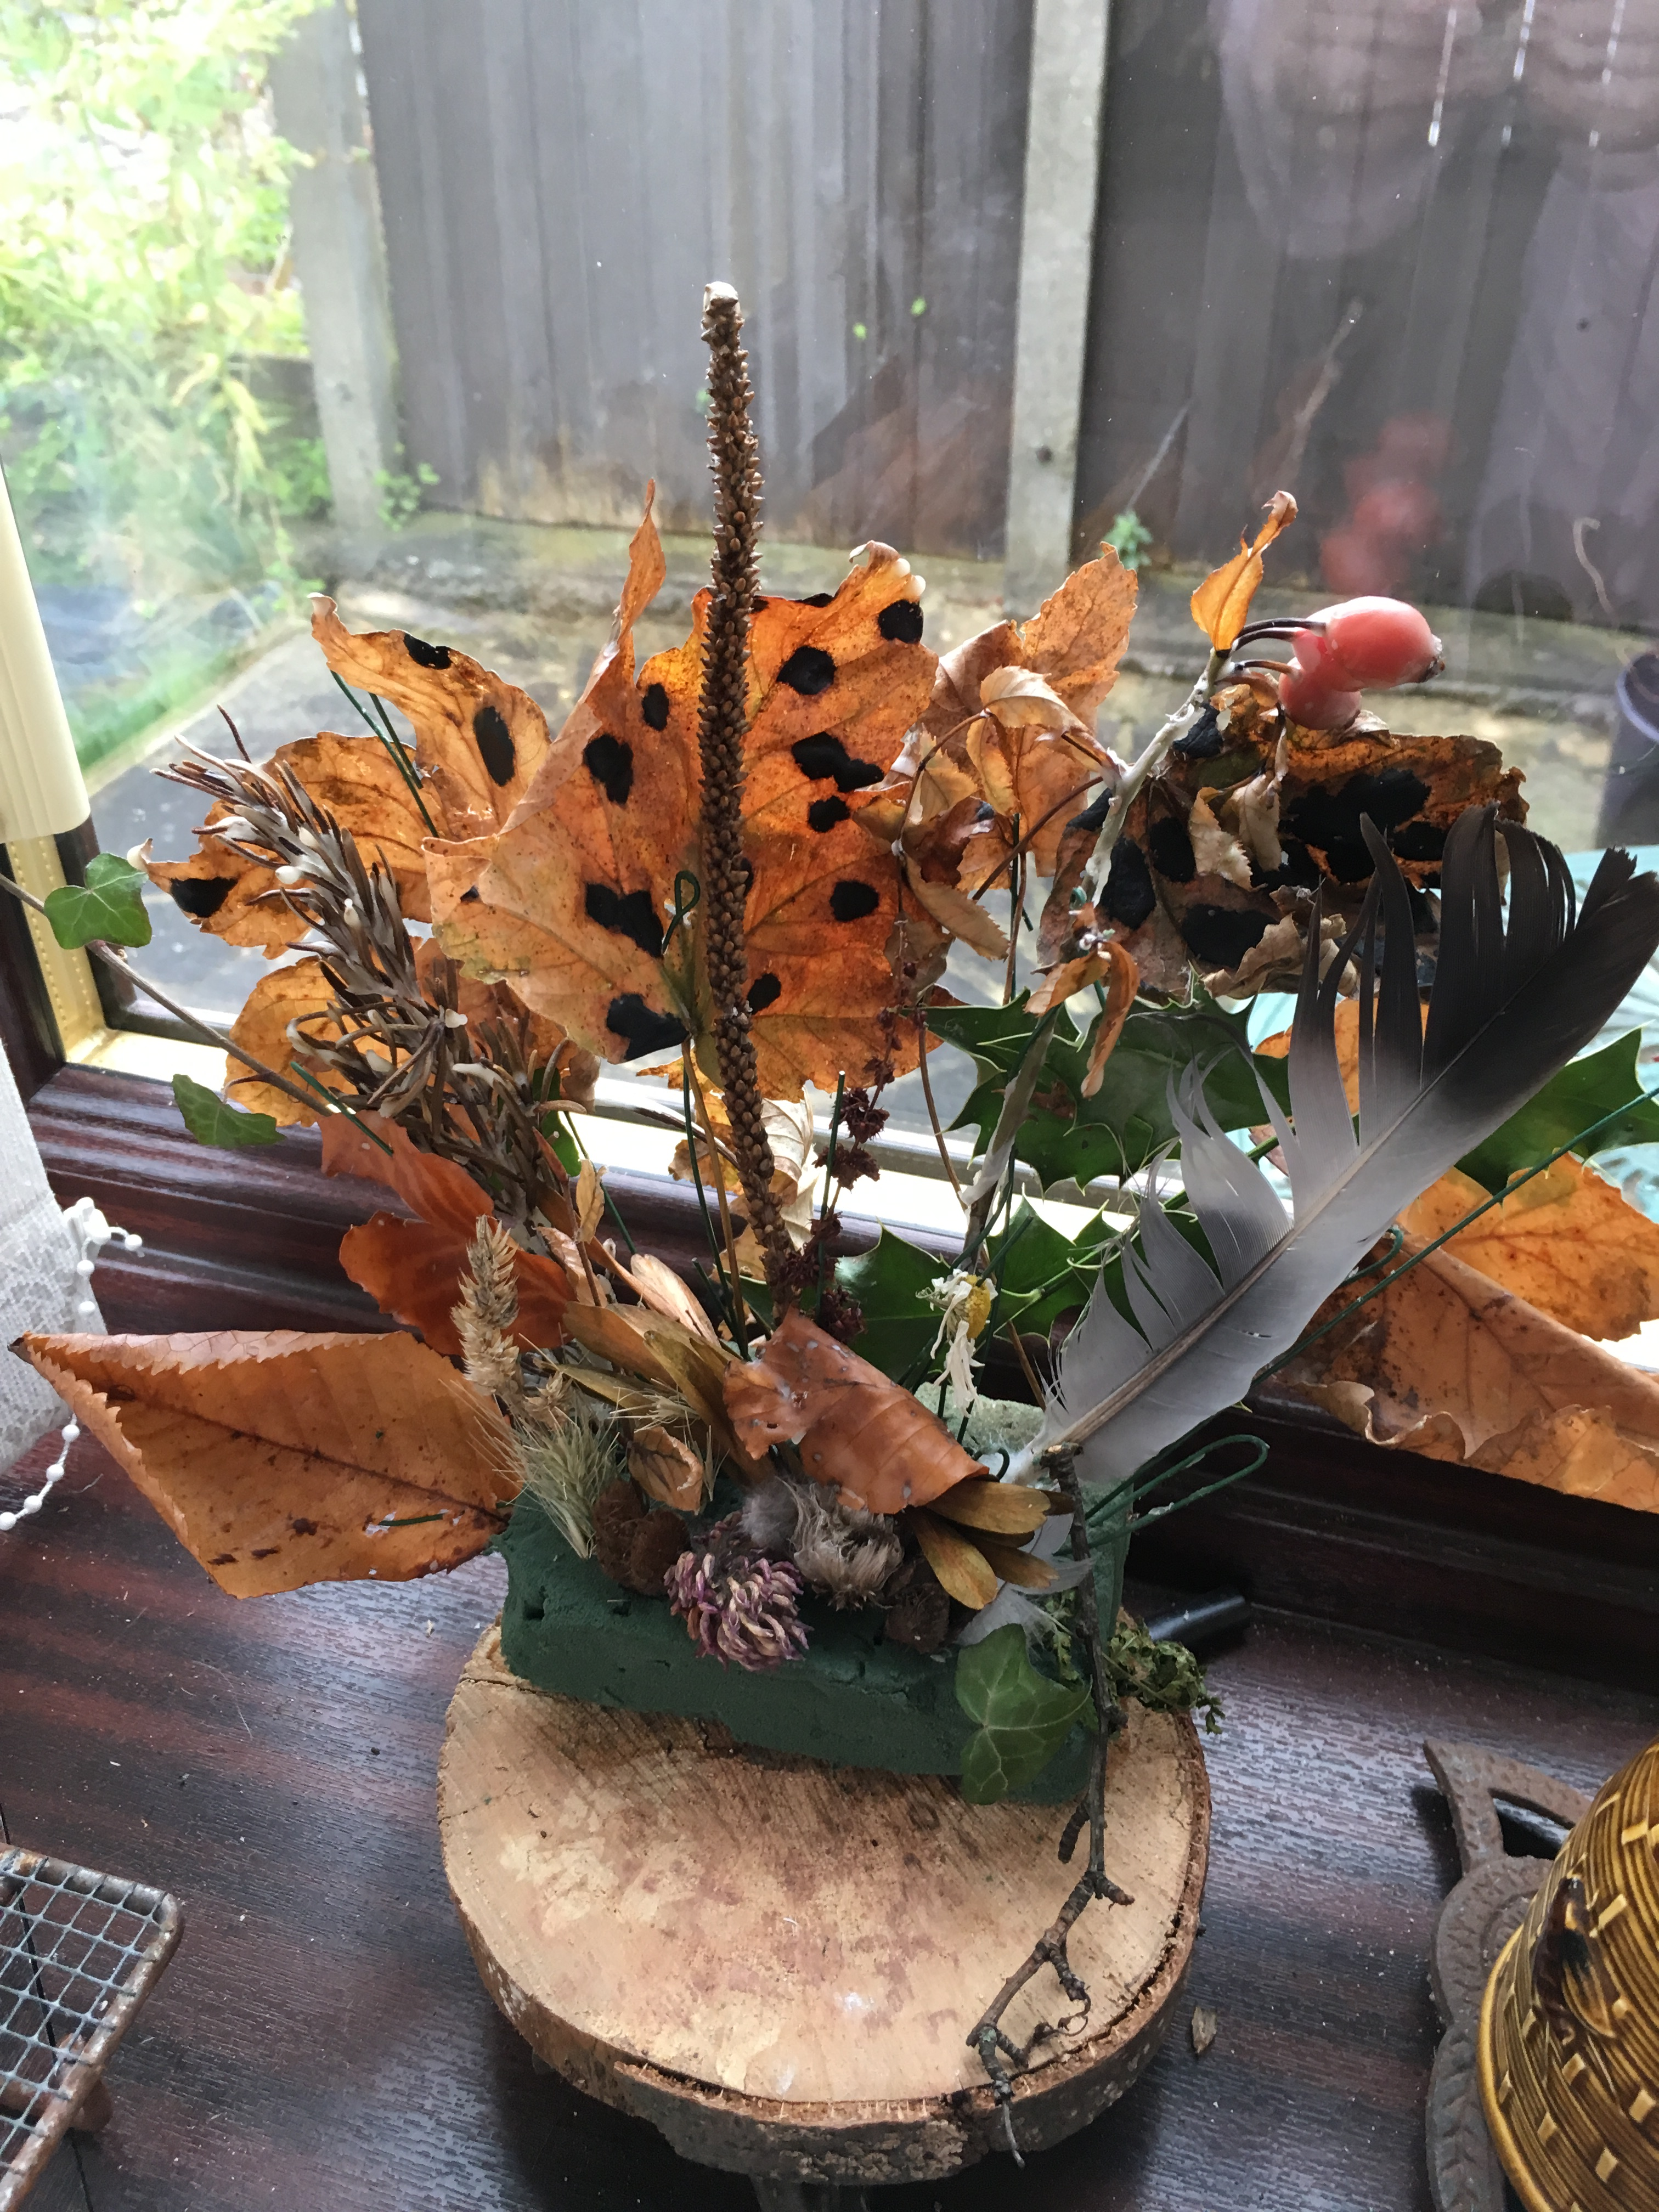 An arrangement of wax dipped autumn leaves and berries collected from woods, with a pigeon feather.  Mounted on a round slice of branch originally used as a prayer message (written on underside) from local church.